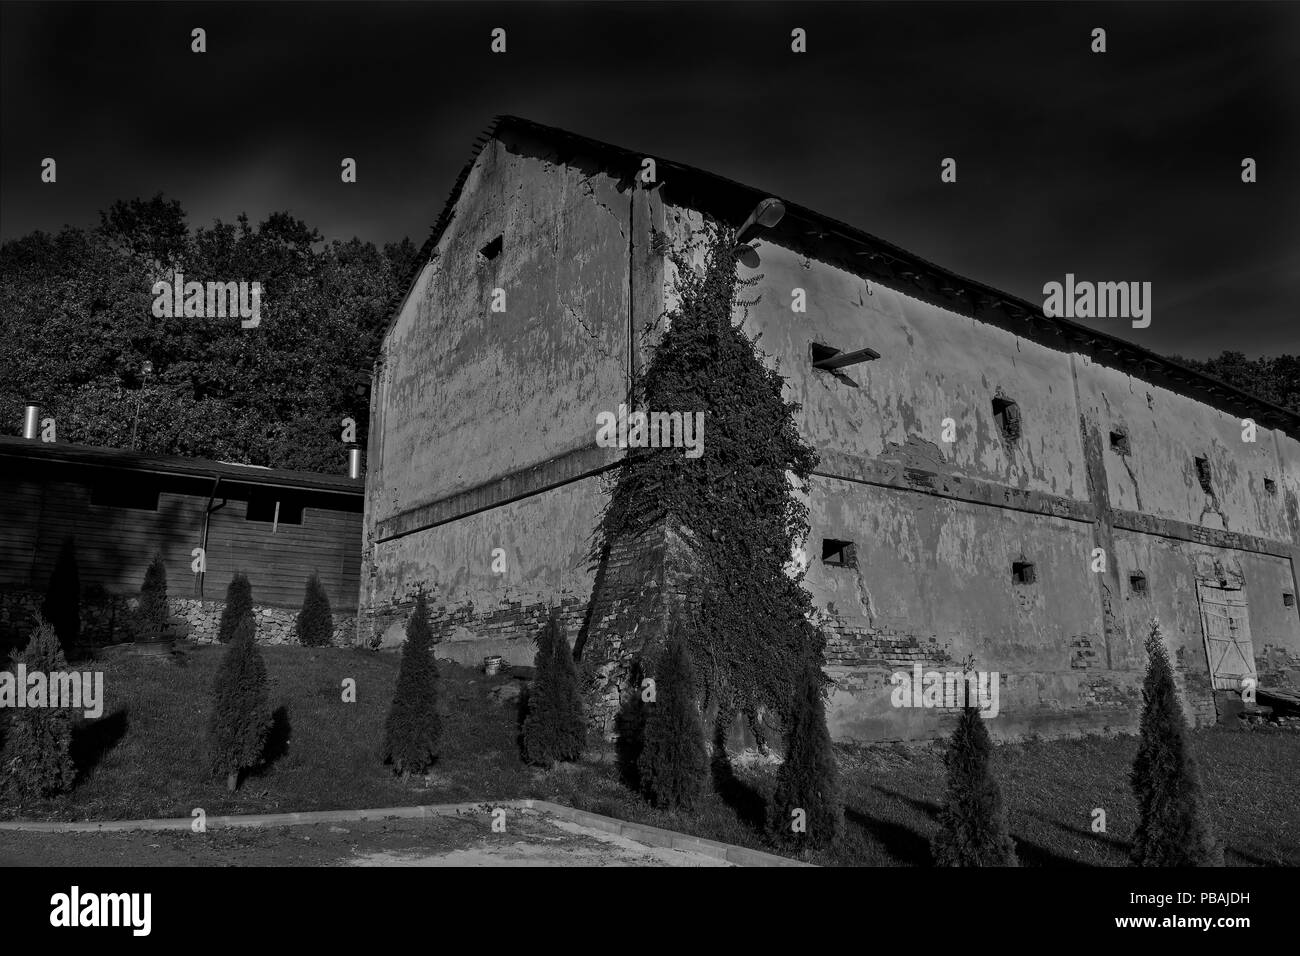 Old building and dark sky - Stock Image